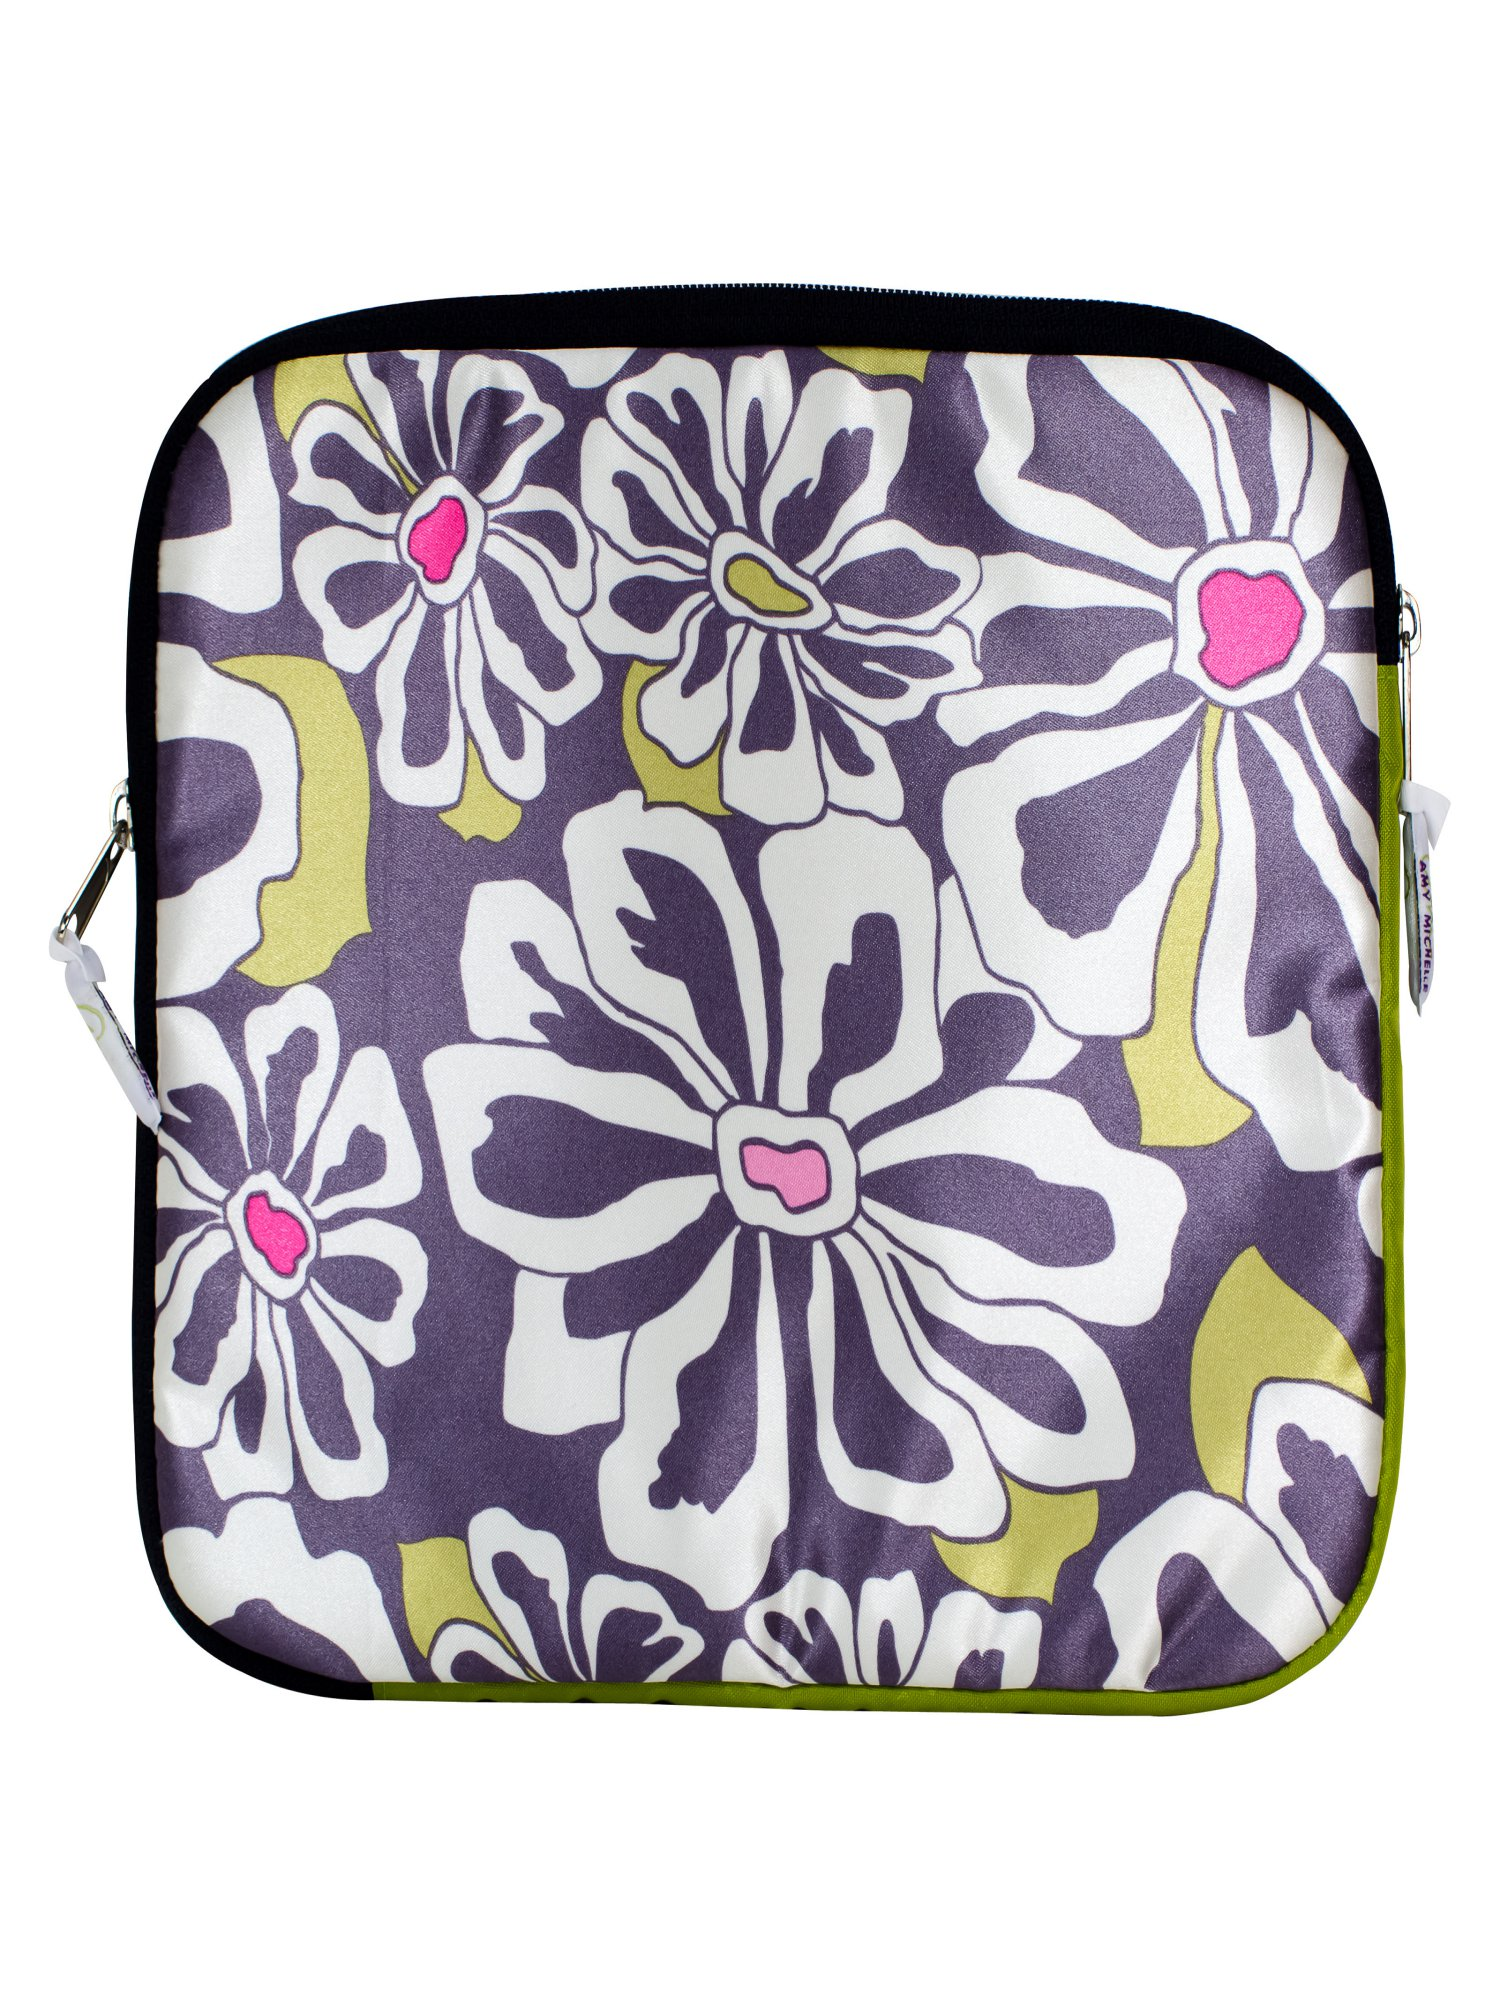 Amy Michelle Go Work iPad/Tablet Sleeve - Charcoal Floral